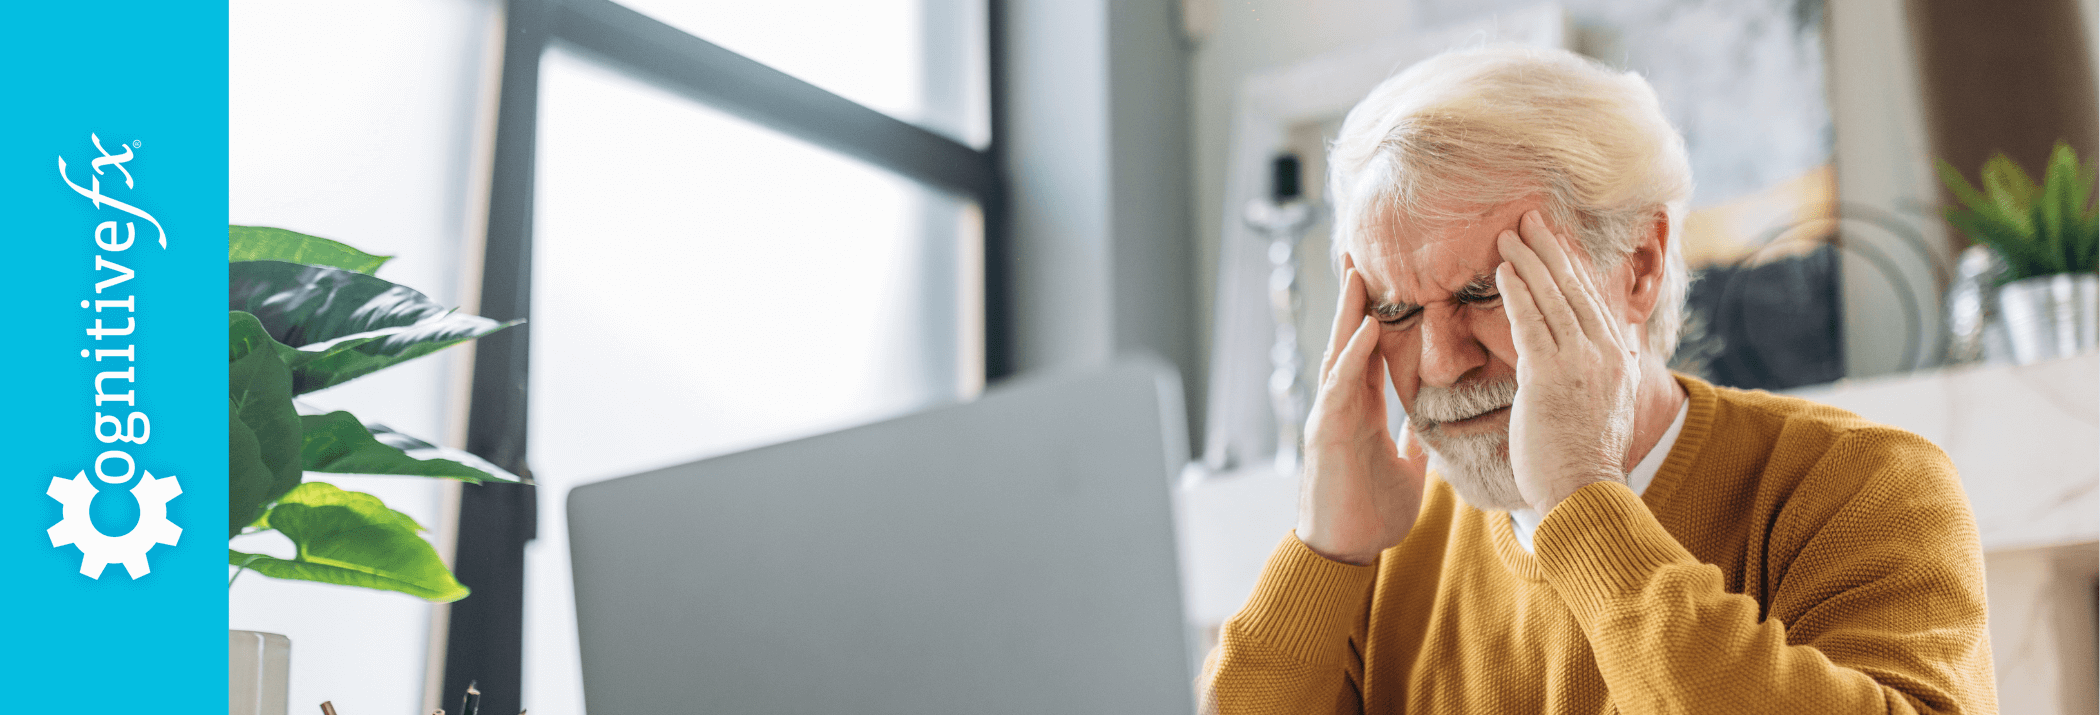 Emotions, Memory, and More: The After Effects of Transient Ischemic Attack (TIA or Mini-Stroke)